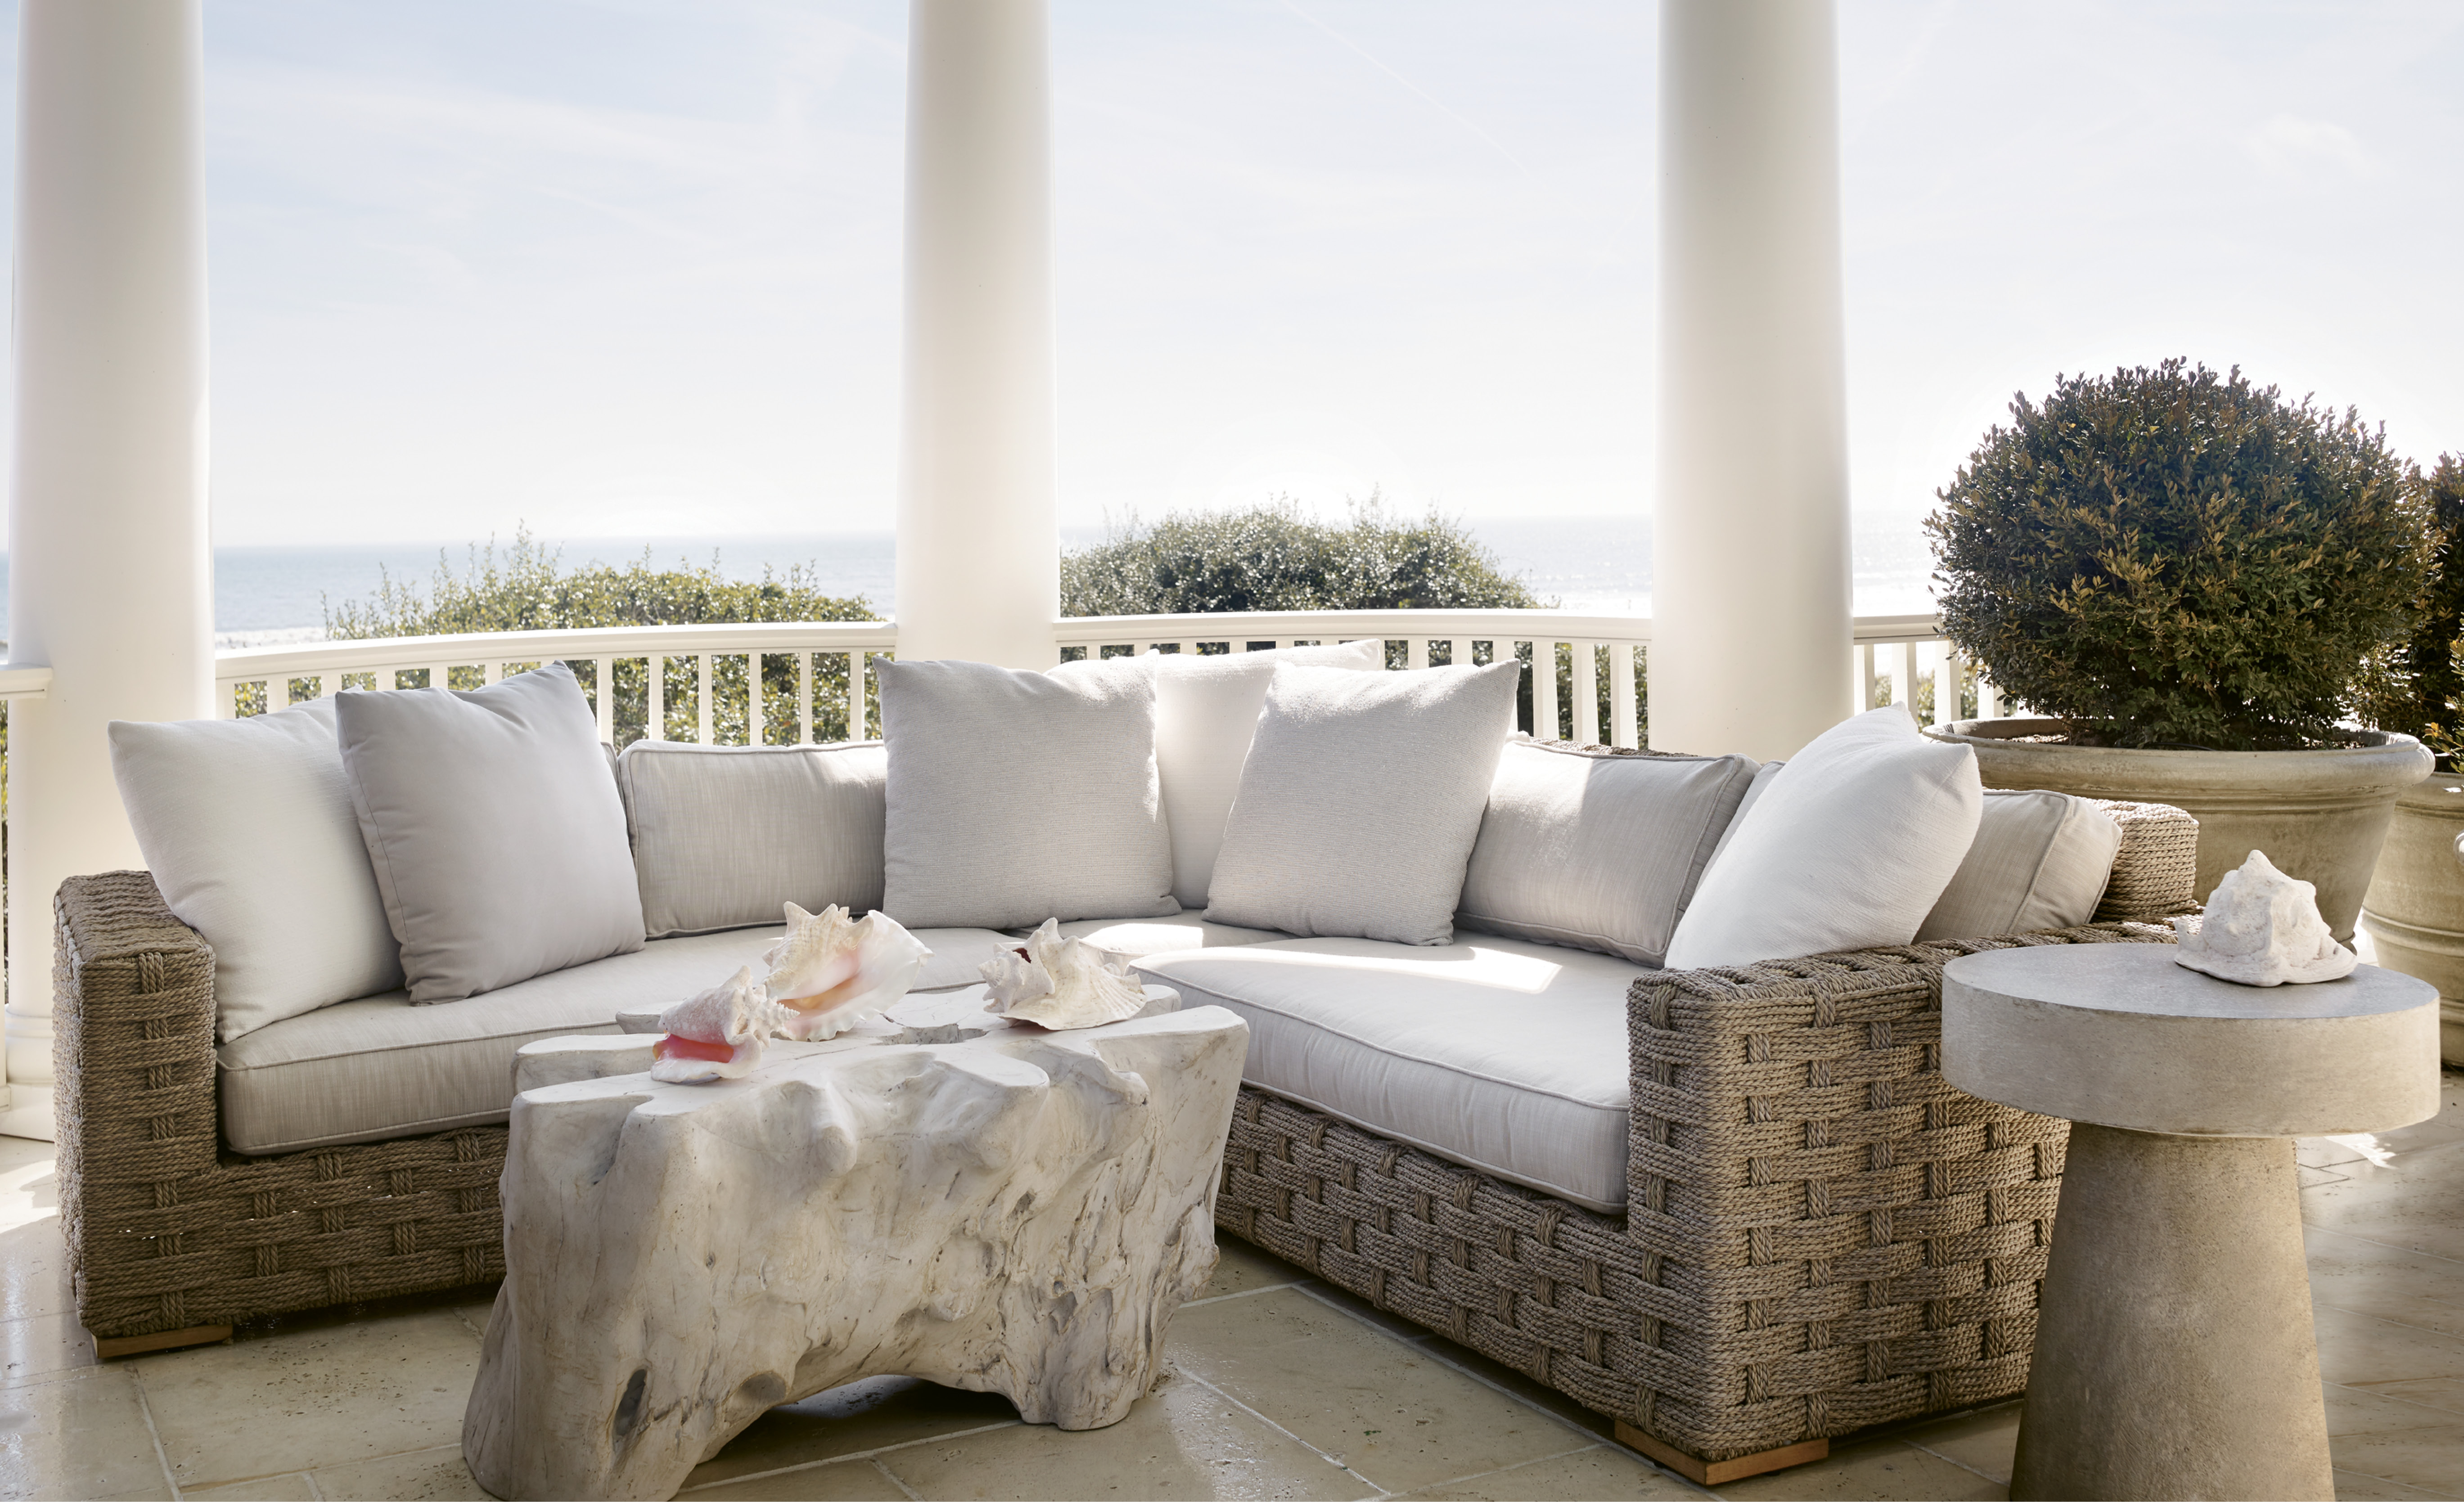 "This columned porch provides both privacy and panoramic views. ""The curved porches and their roofs shield the house from the neighbors, so you feel like you're in the only house on the beach,"" says architect Chris Rose. The outdoor furnishings, including a Restoration Hardware rope sectional, were selected to echo the classicism and Cape Cod influence of the architecture."